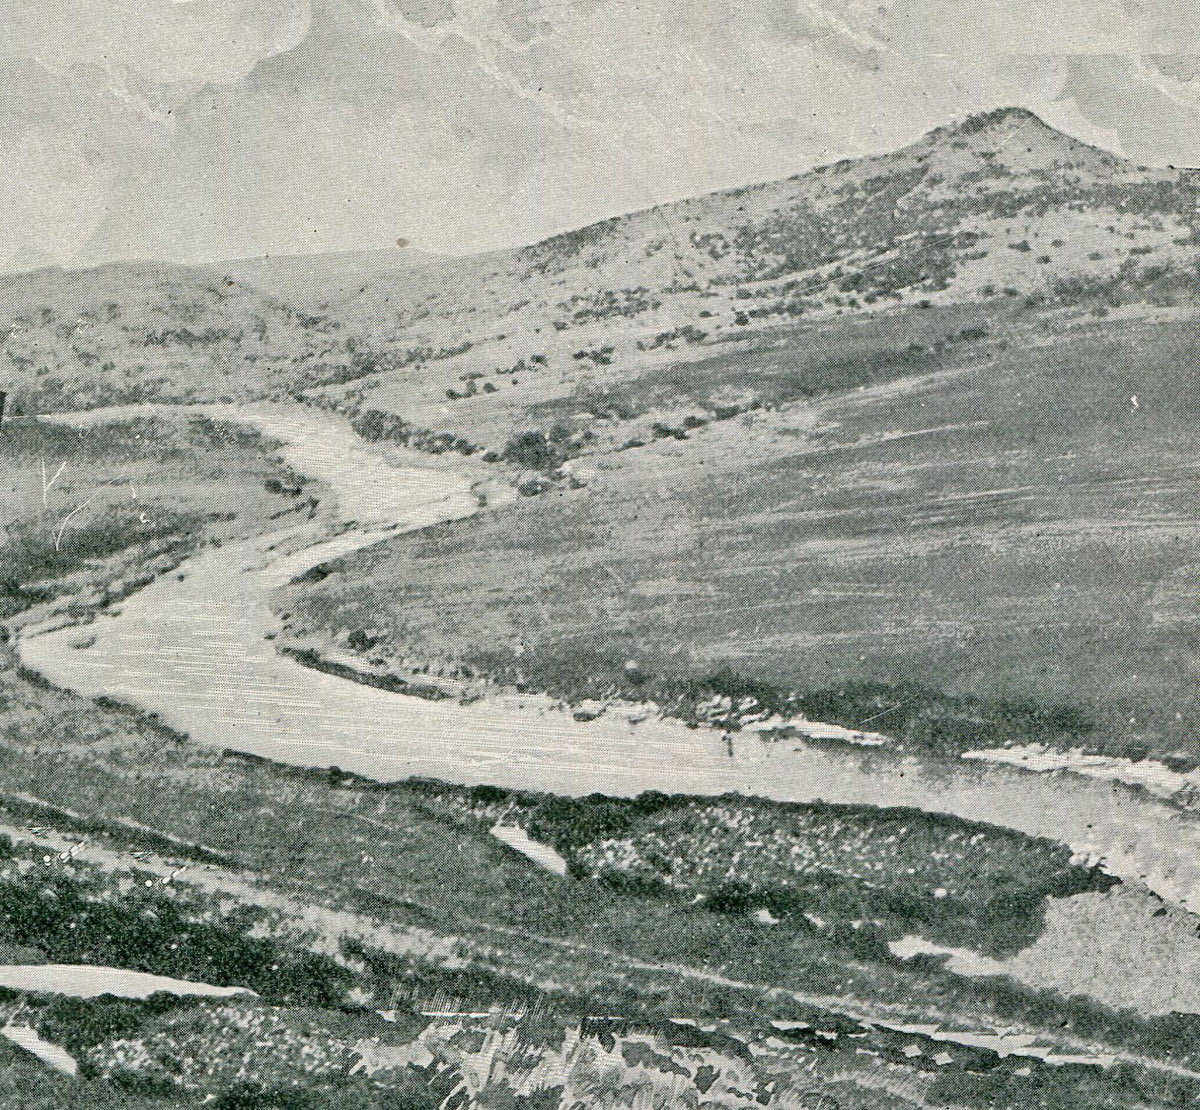 Val Krantz viewed across the Tugela River: Battles of Val Krantz and Pieters 5th to 28th February 1900 in the Great Boer War